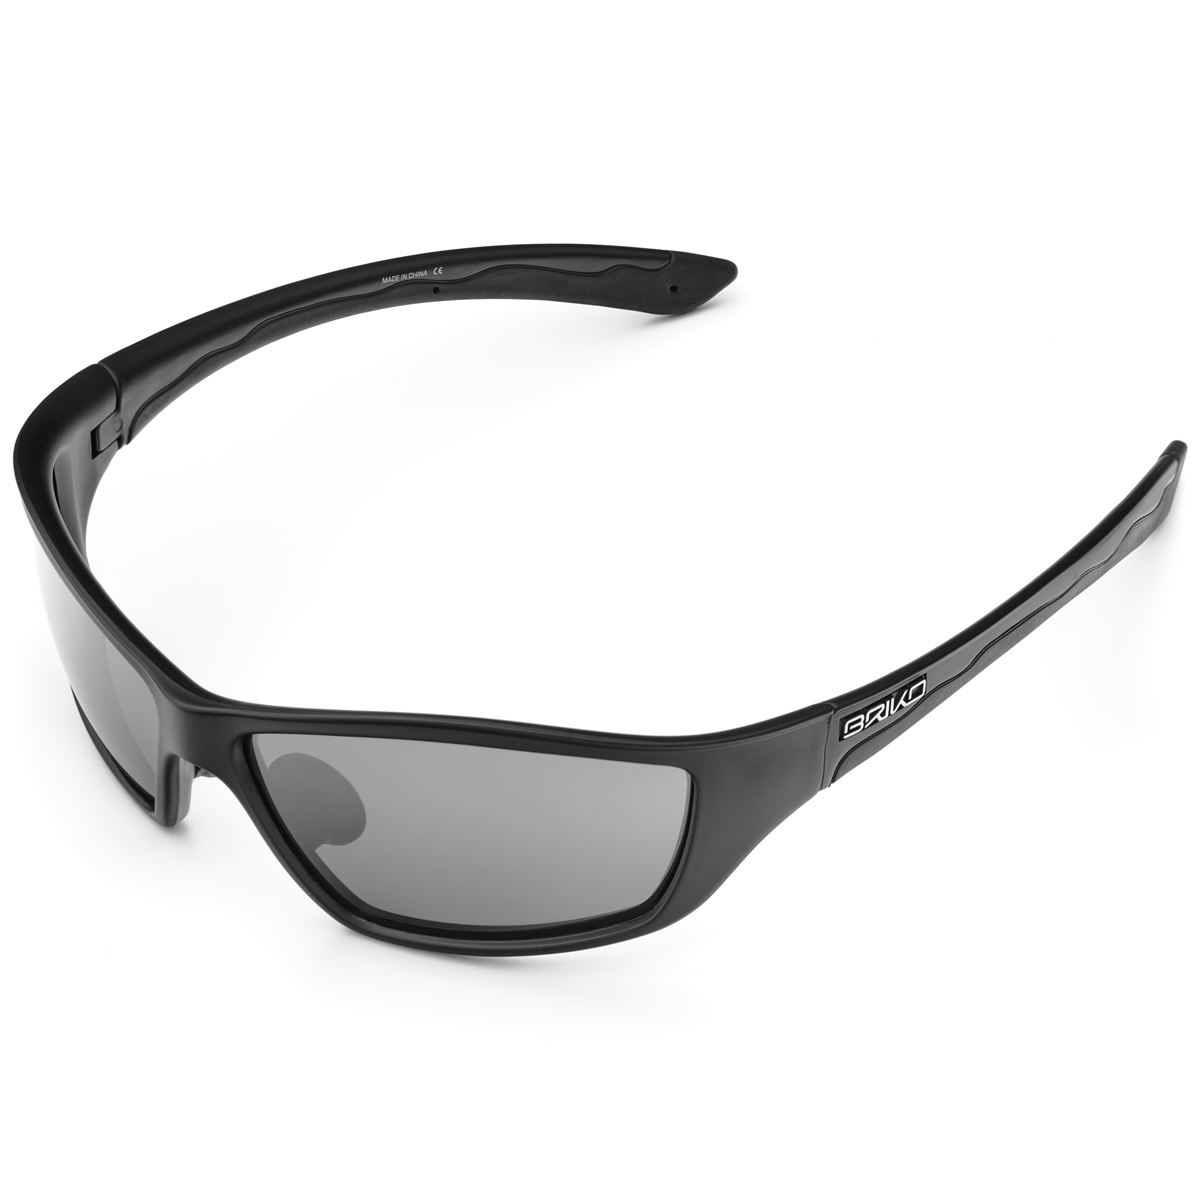 2cfea90a5bd Briko ACTION Glasses